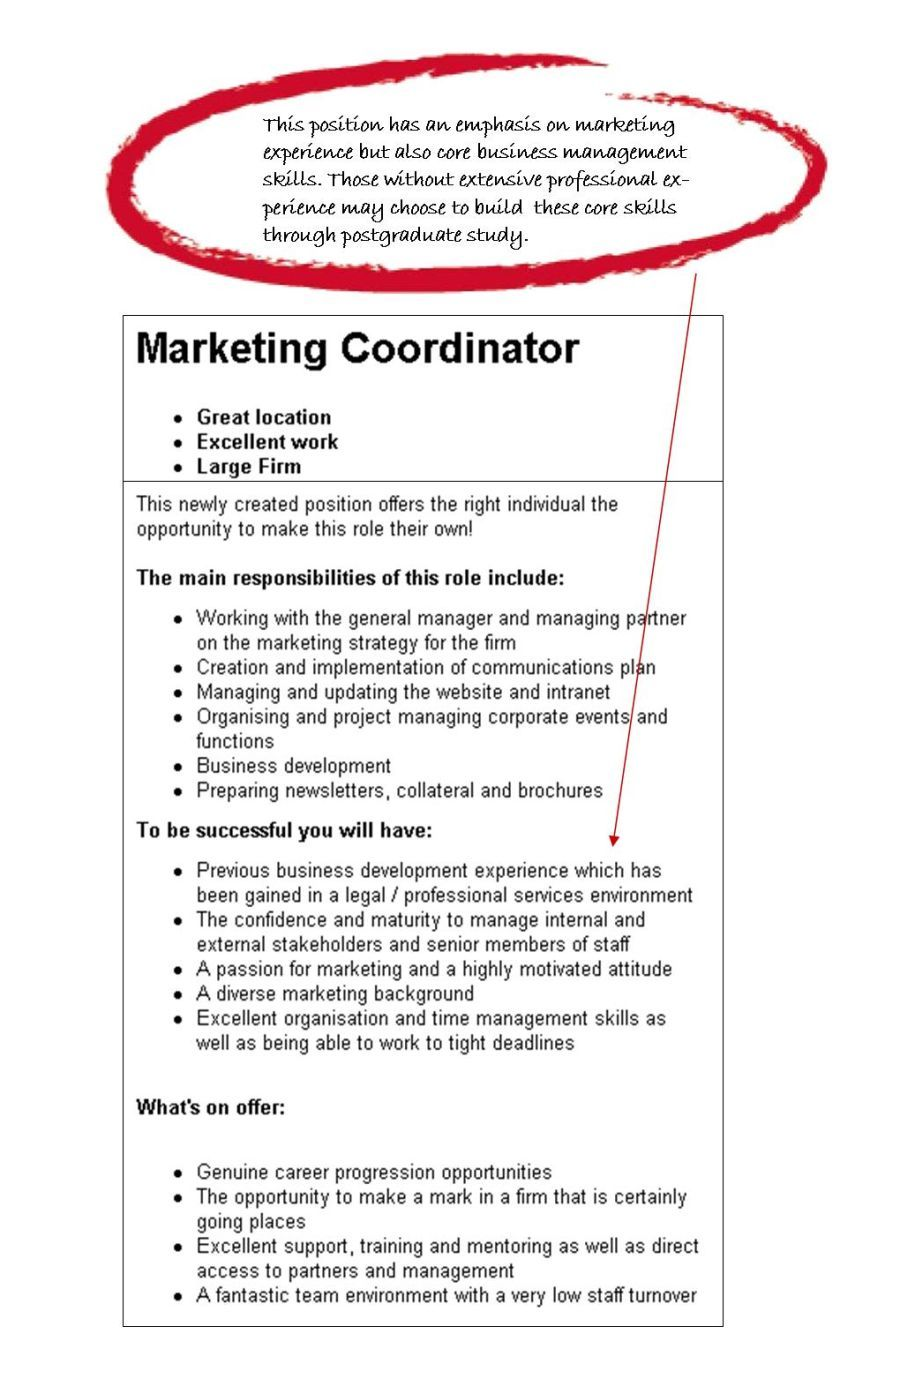 Objective Examples For Resume Objectives For Resume  Resume  Pinterest  Resume Objective And